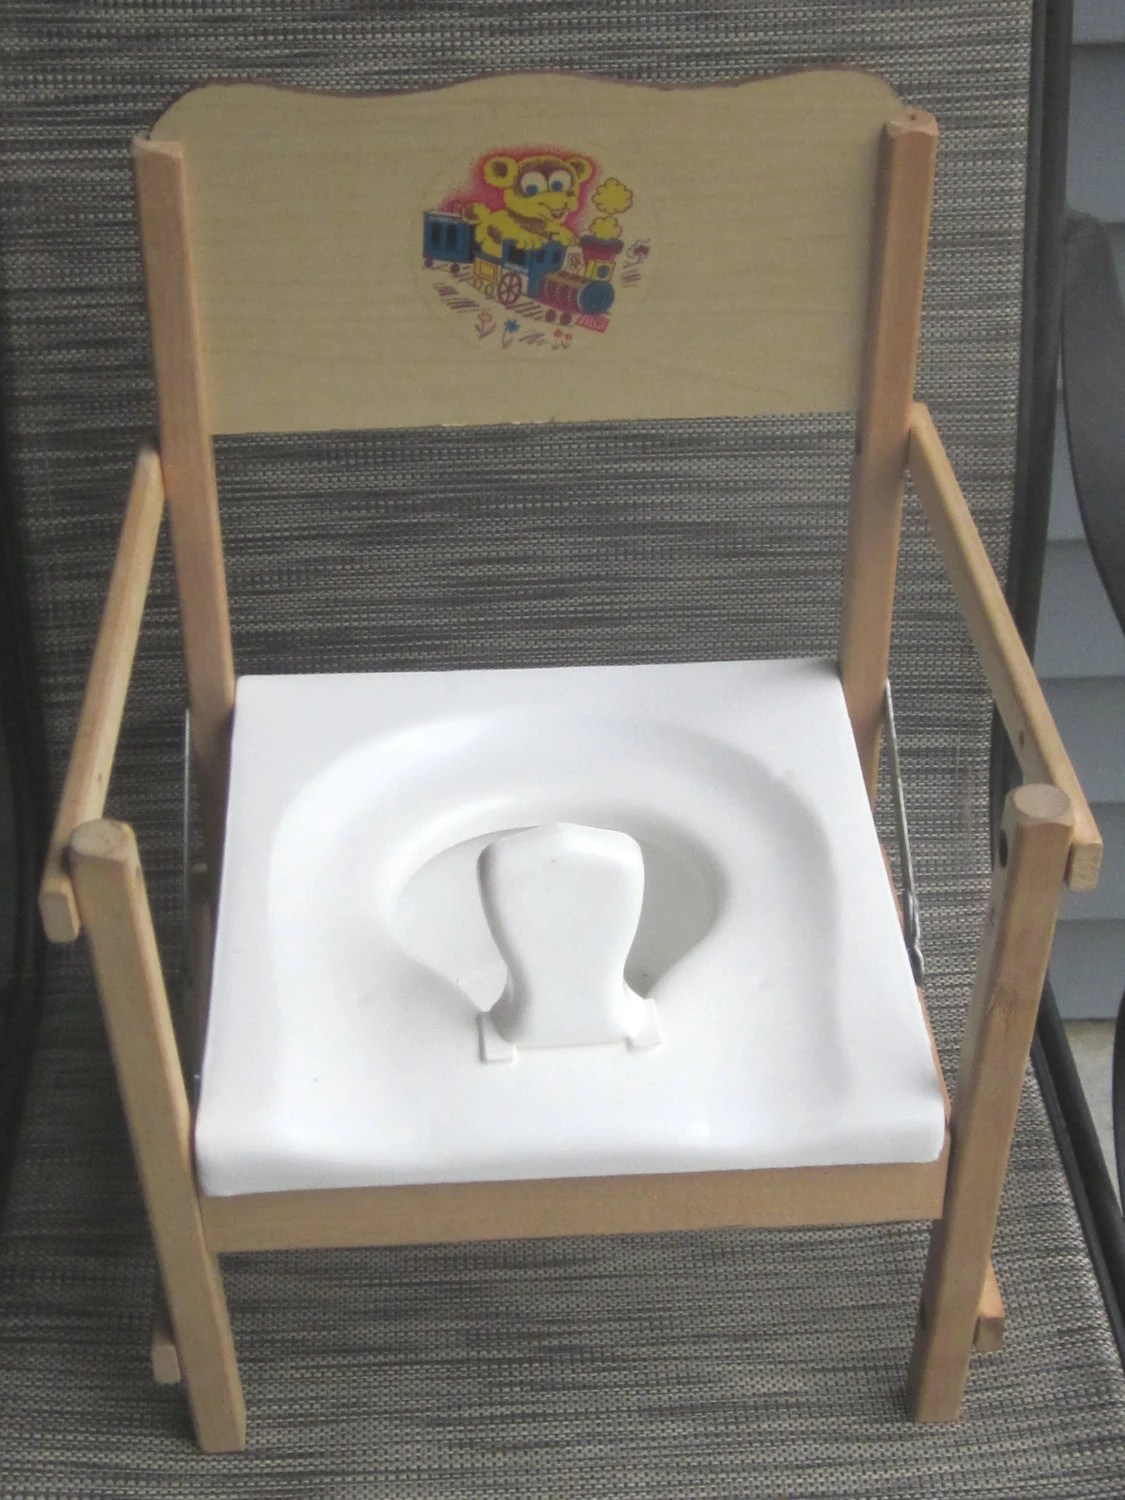 3 in 1 potty chair alternative to covers for wedding vintage training folding